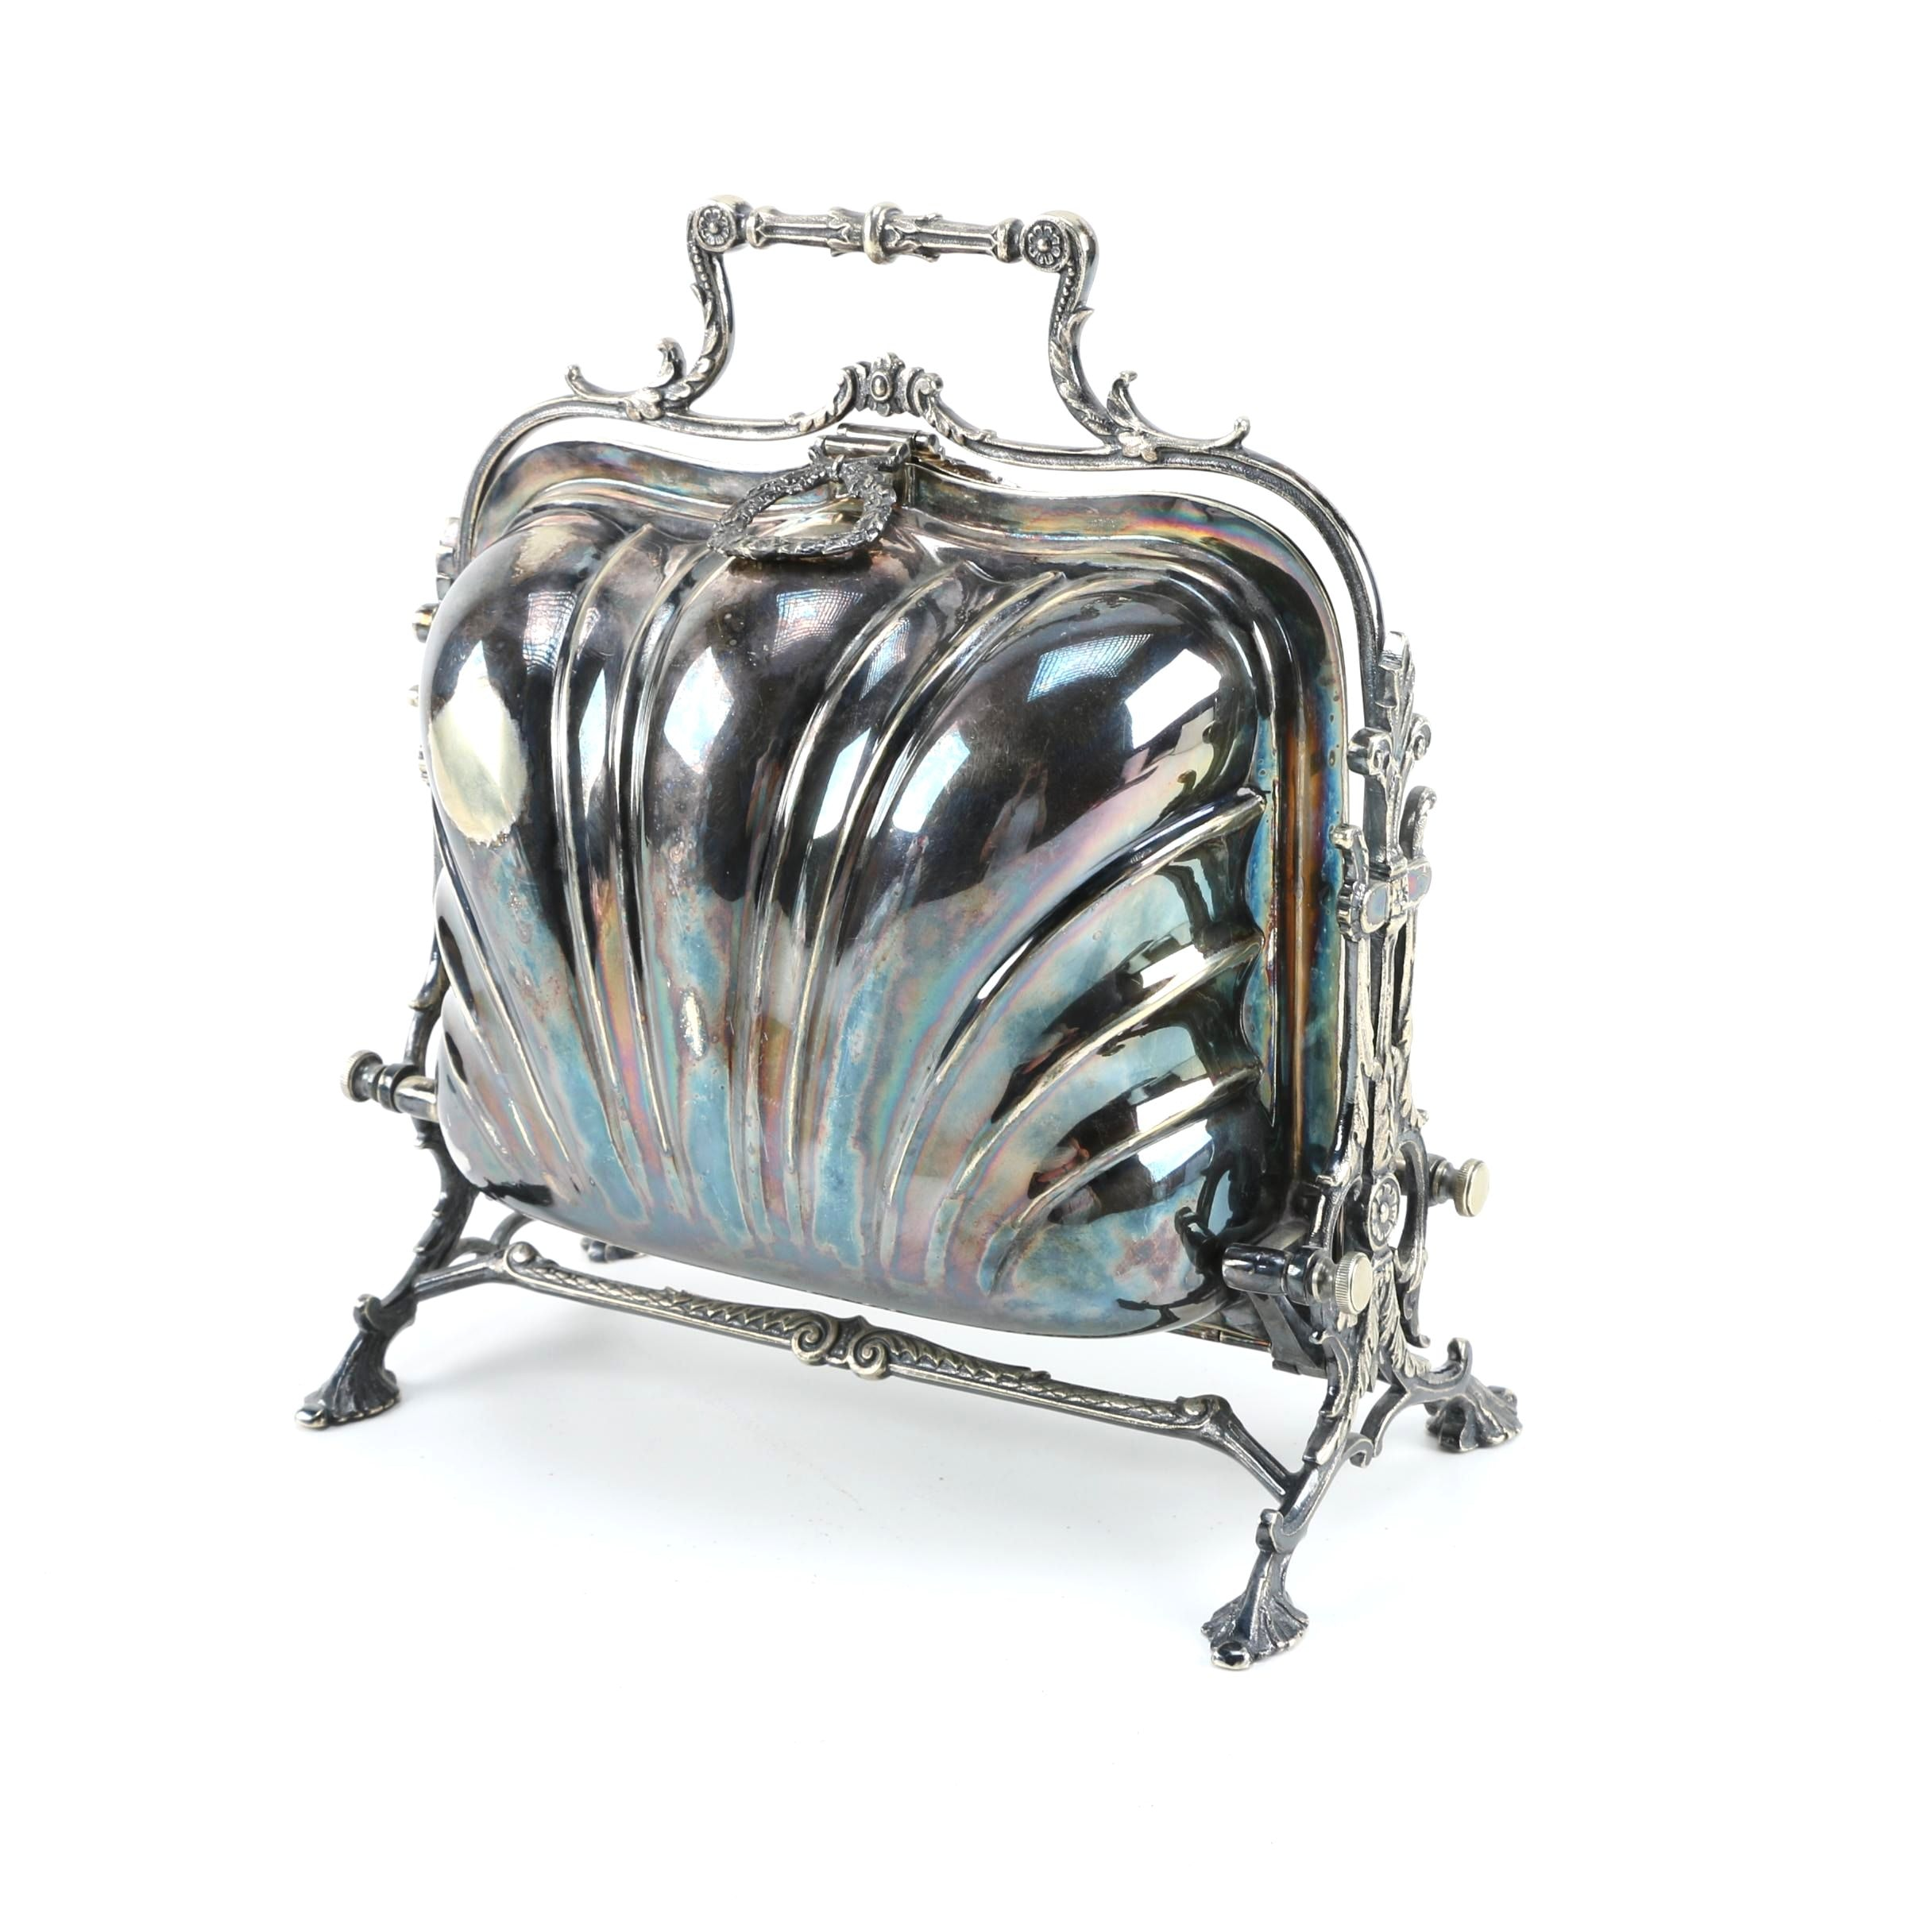 Late 19th Century Fenton Bros English Silver Plated Folding Biscuit Box